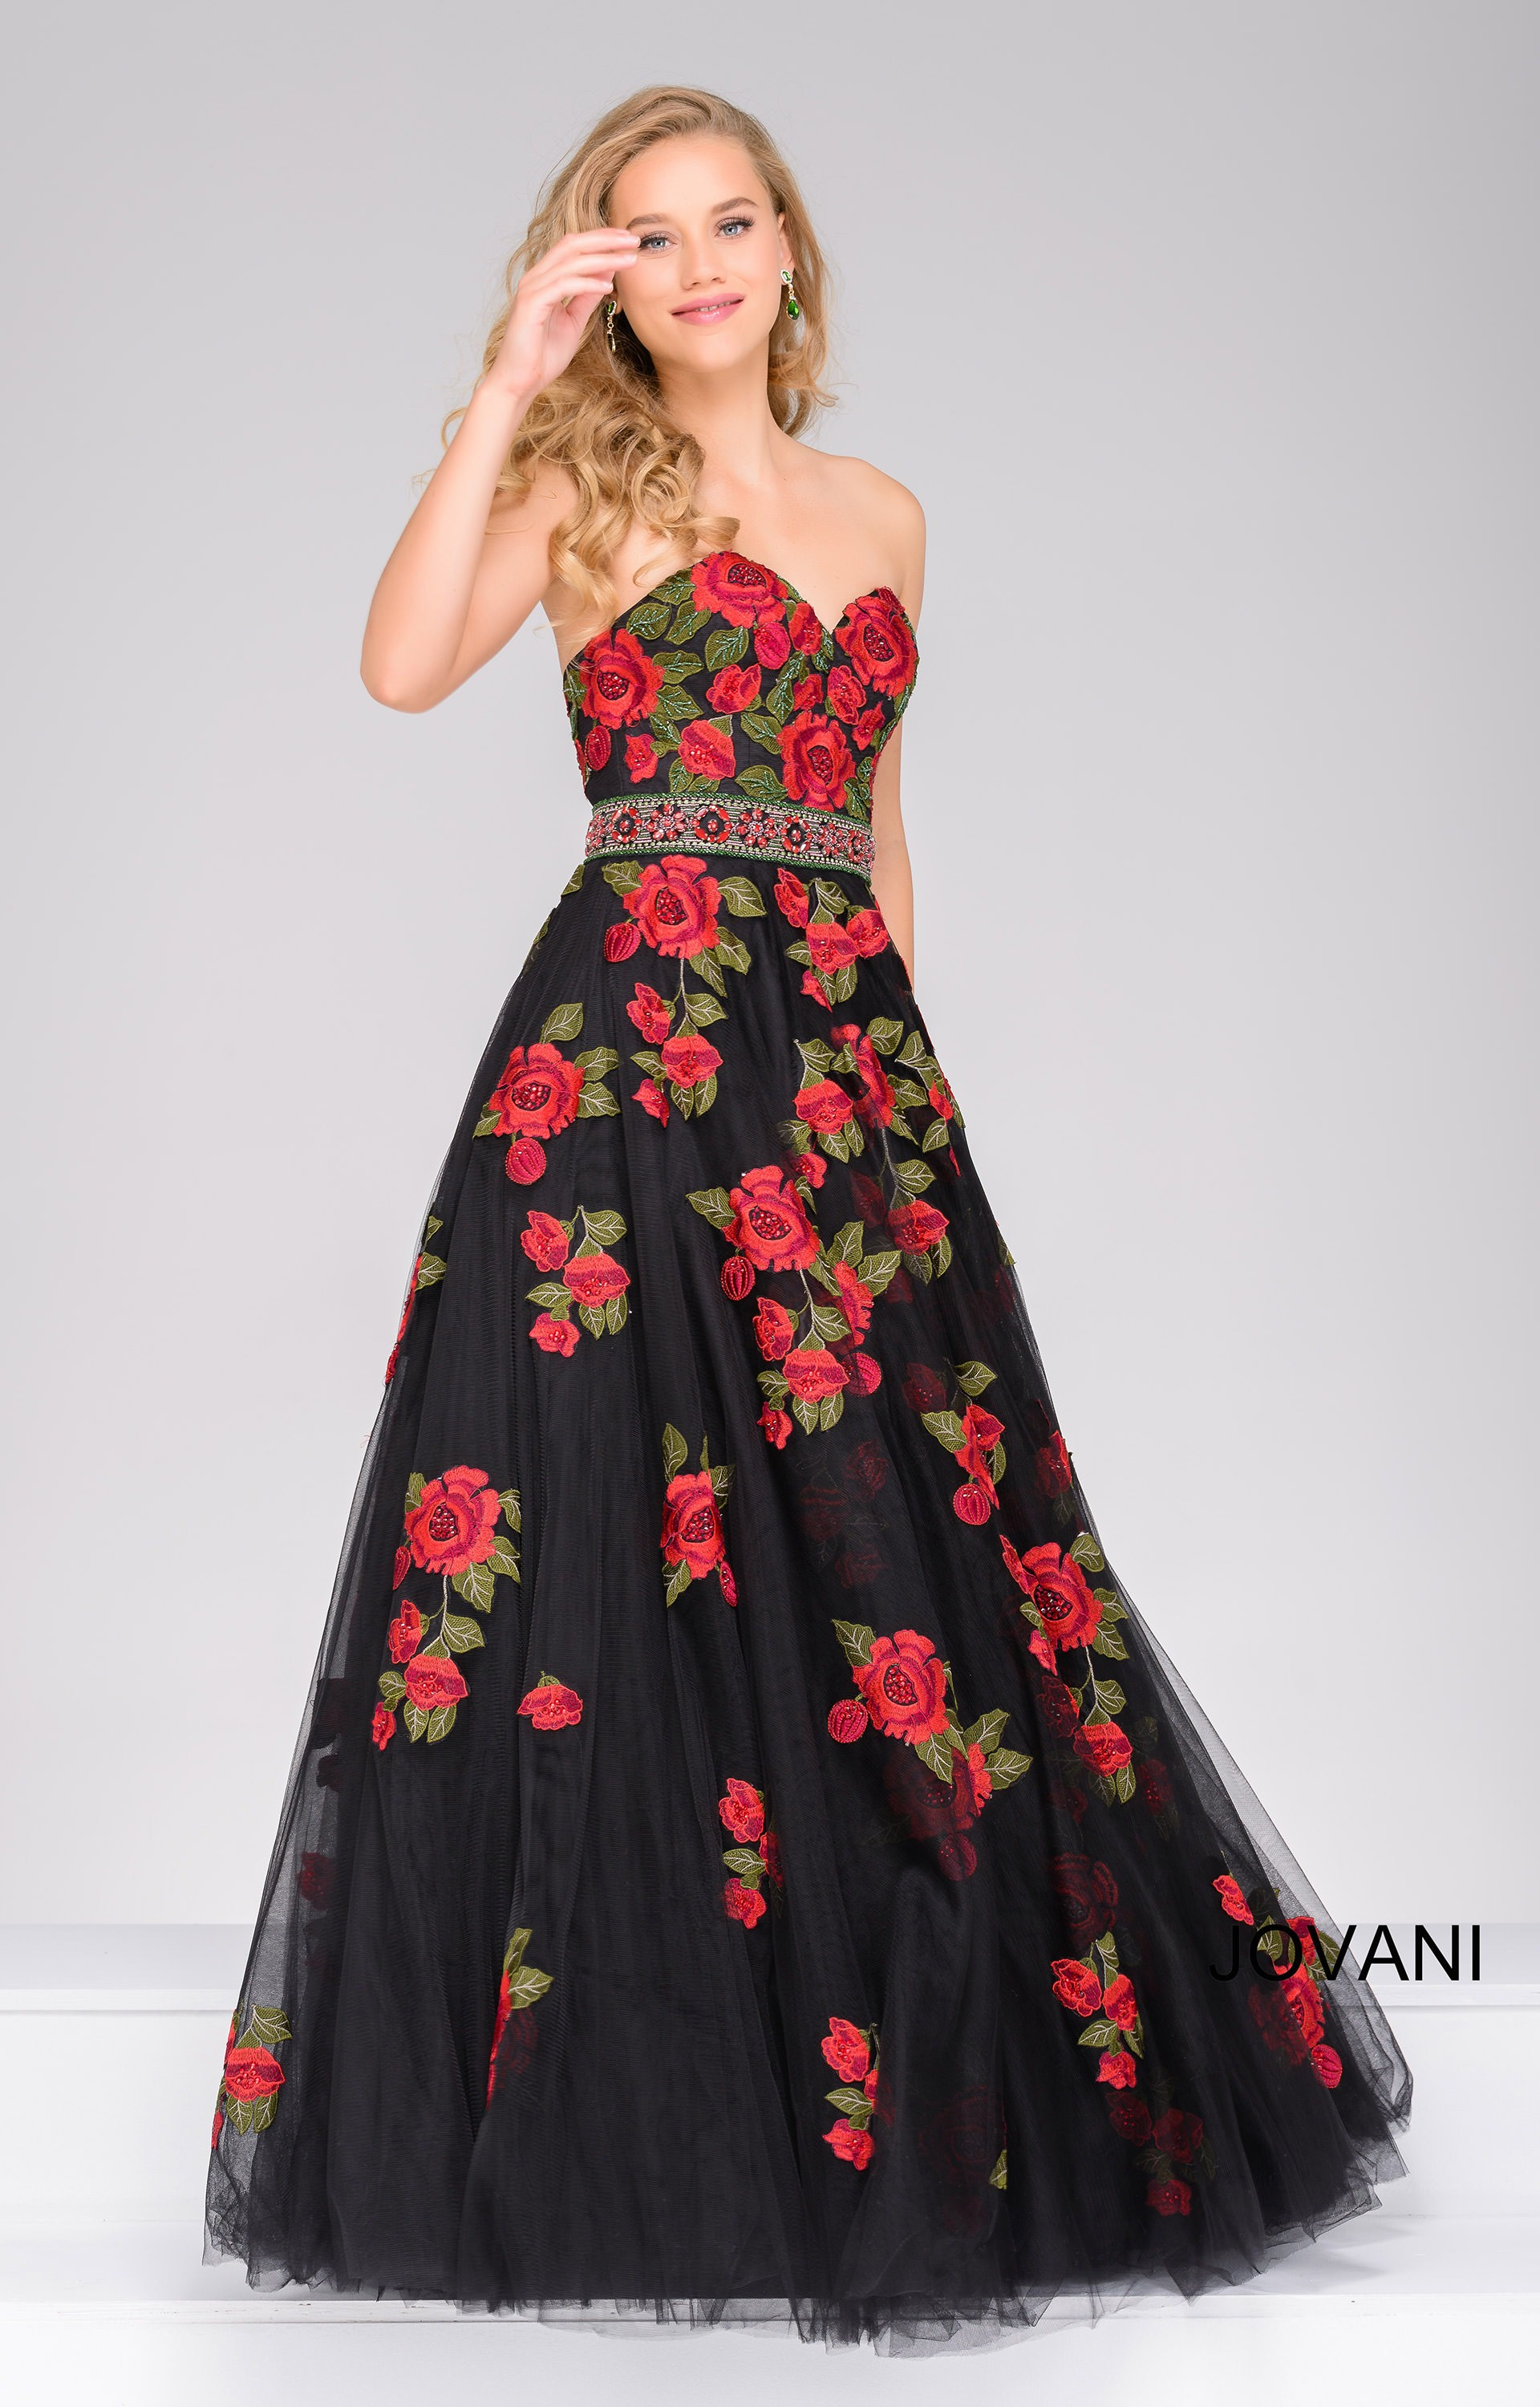 Jovani 45741 Sweetheart Strapless Rose Printed Ball Gown